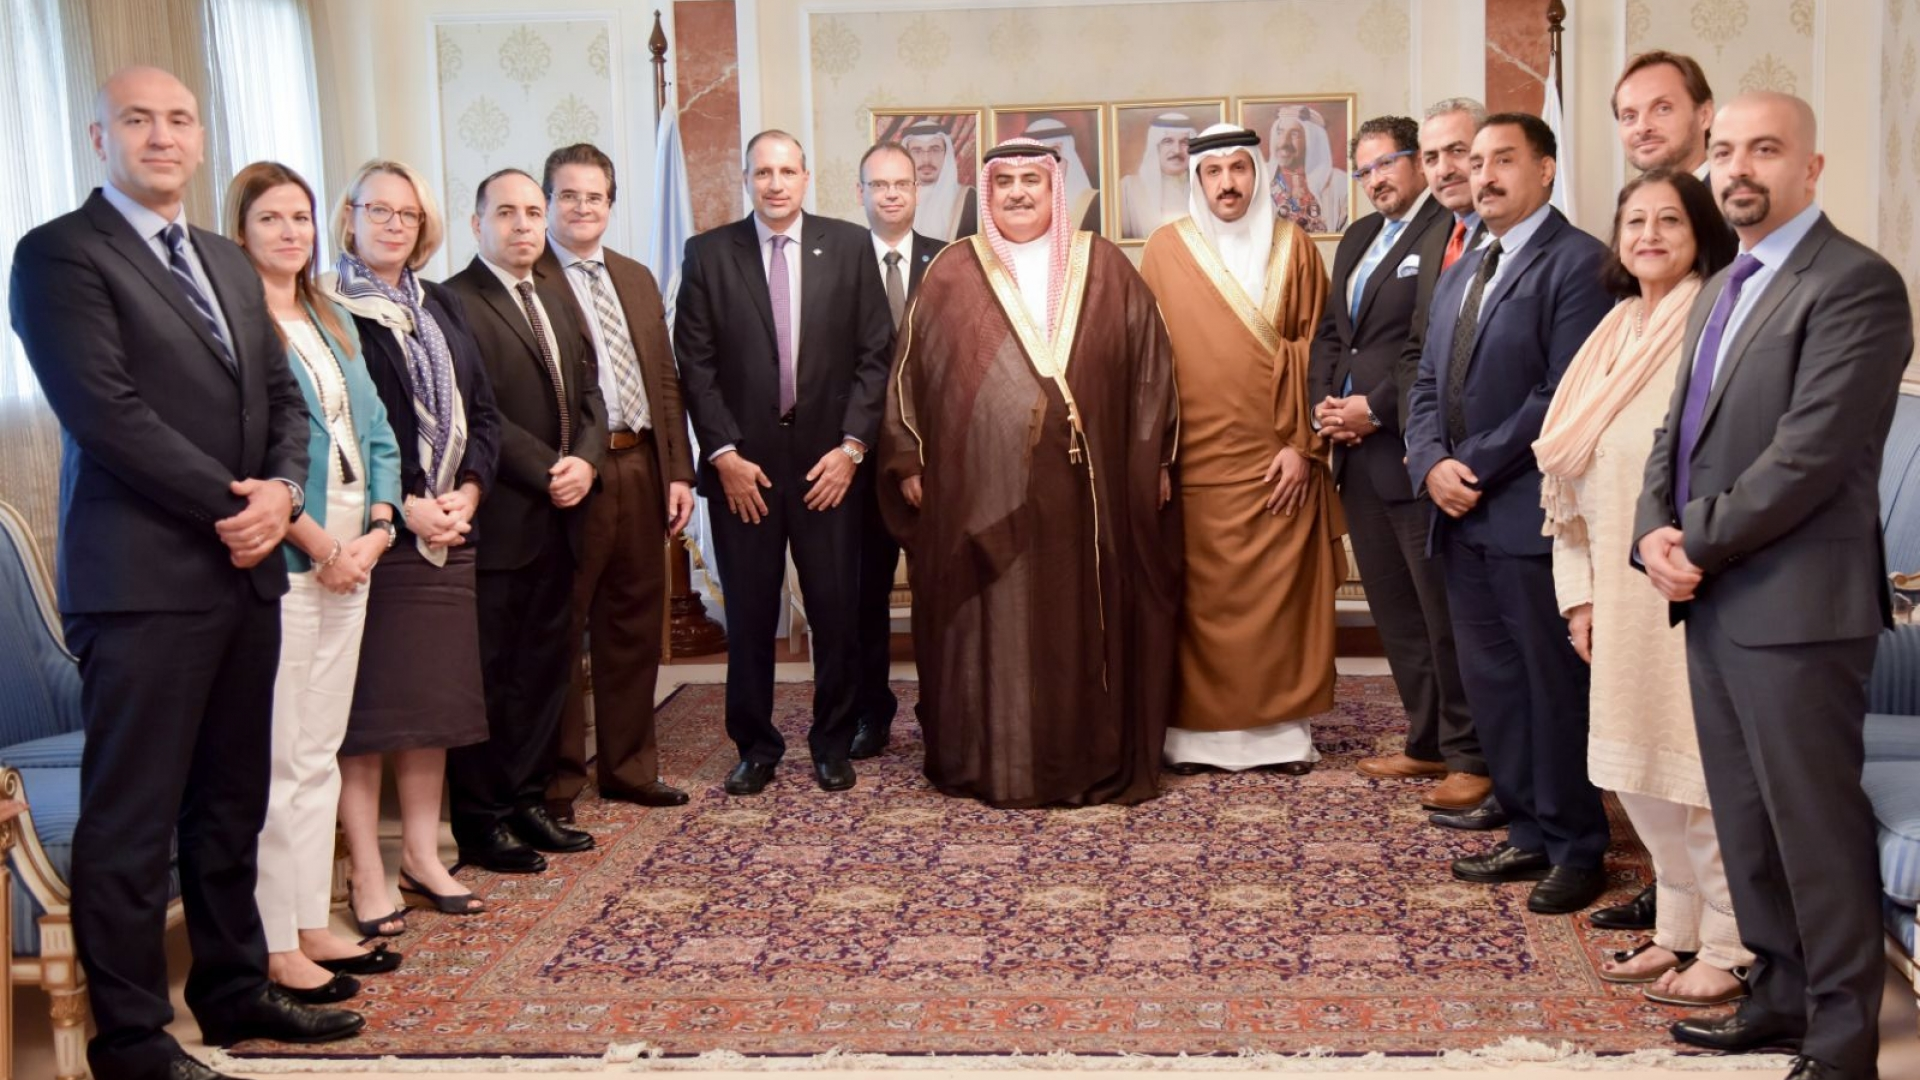 IAEA Signs New SPF for Bahrain Together With 15 Other UN